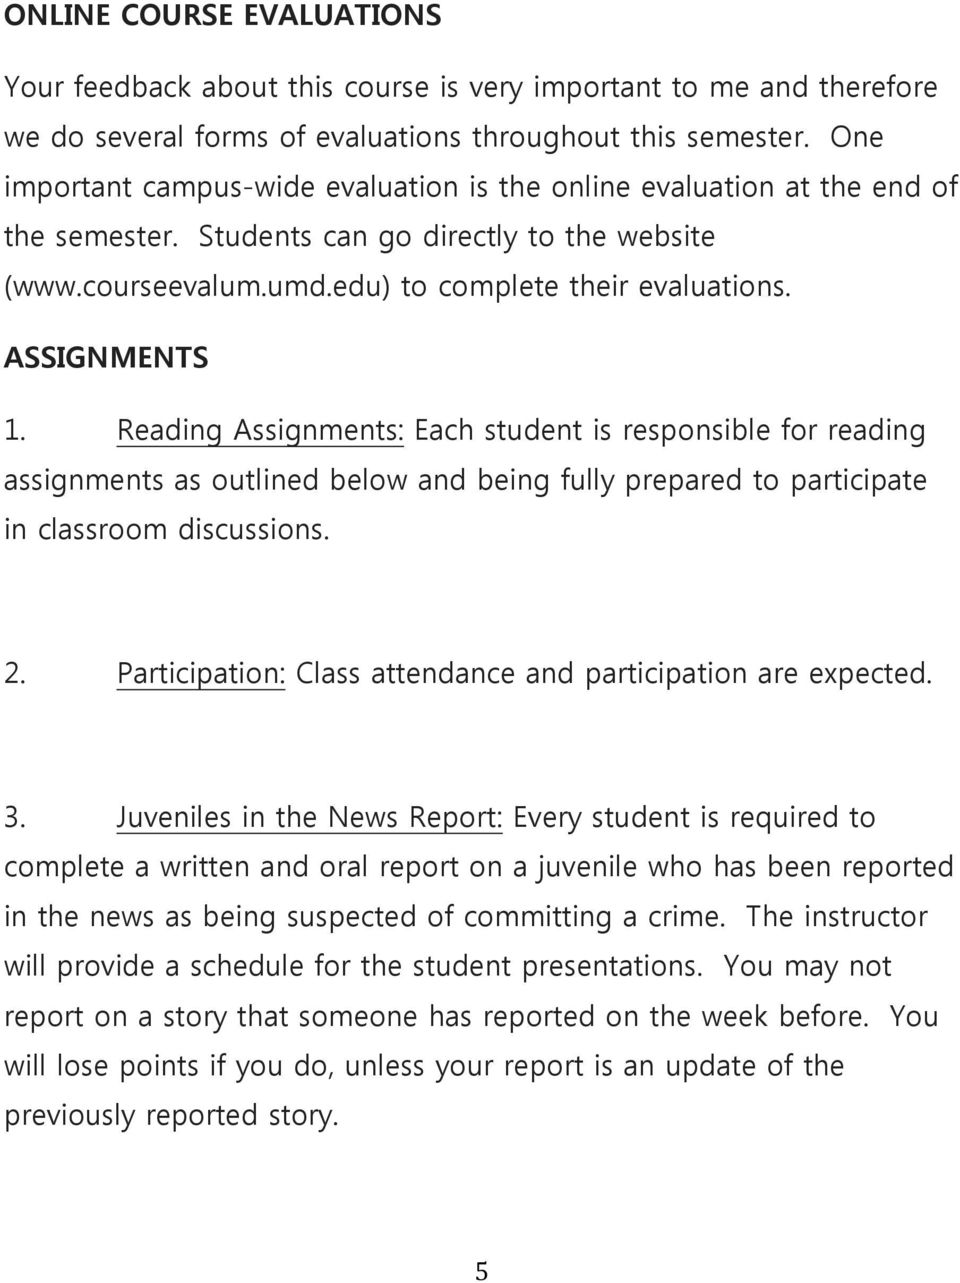 ASSIGNMENTS 1. Reading Assignments: Each student is responsible for reading assignments as outlined below and being fully prepared to participate in classroom discussions. 2.